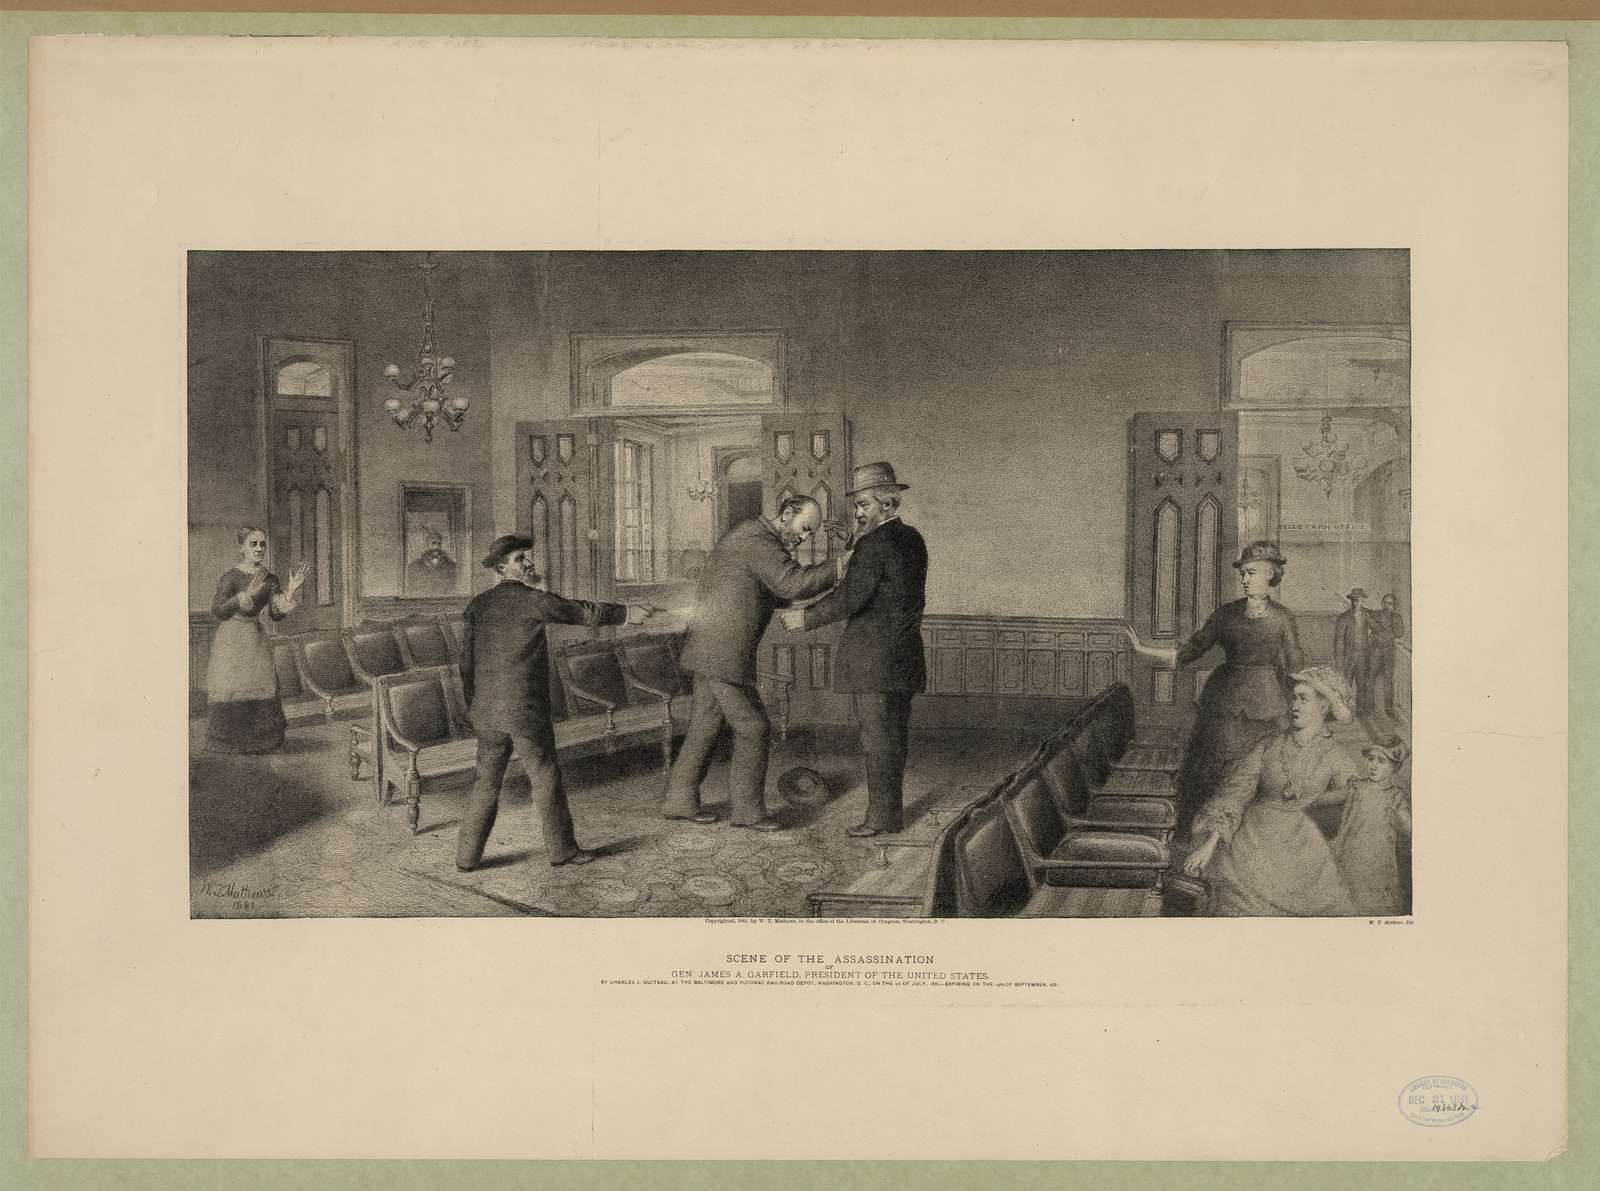 Scene of the assassination of Gen. James A. Garfield, President of the United States